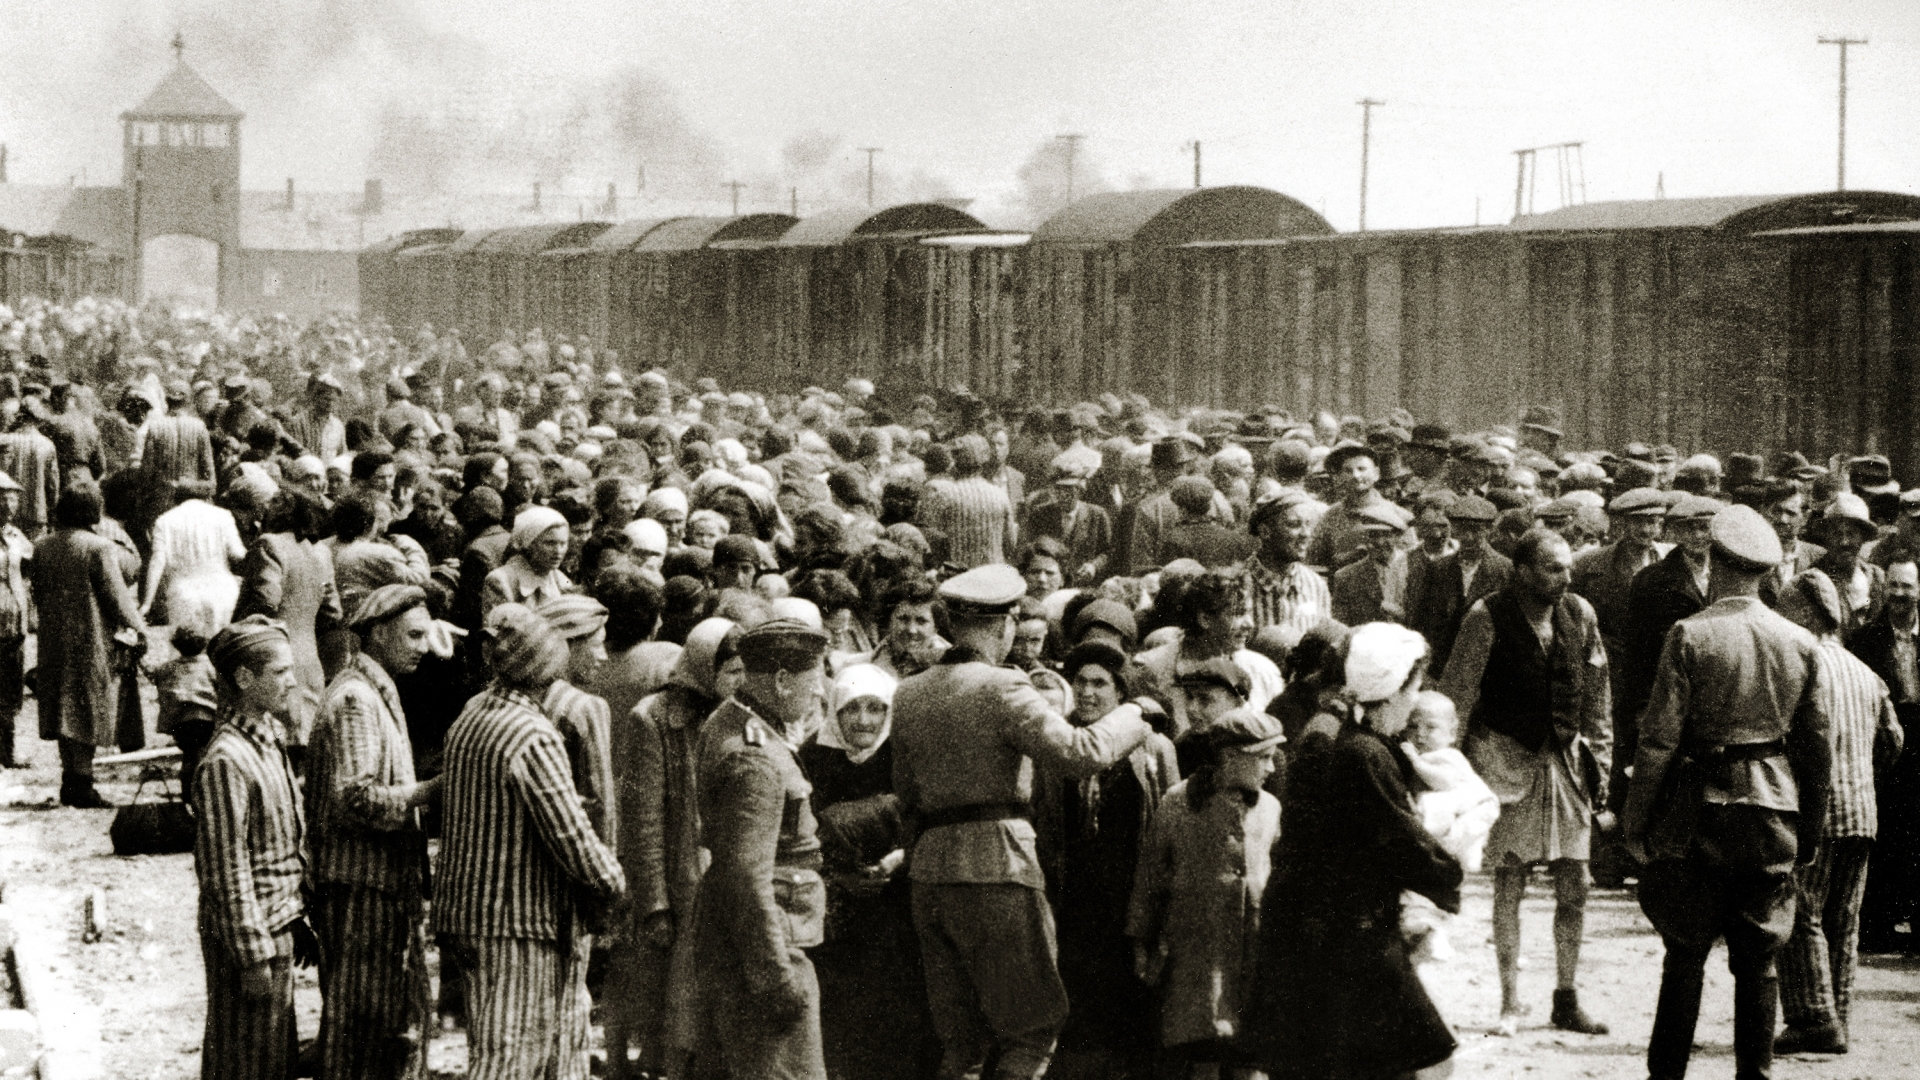 The arrival of Hungarian Jews in Auschwitz-Birkenau, in German-occupied Poland, June 1944. (Credit: Galerie Bilderwelt/Getty Images)